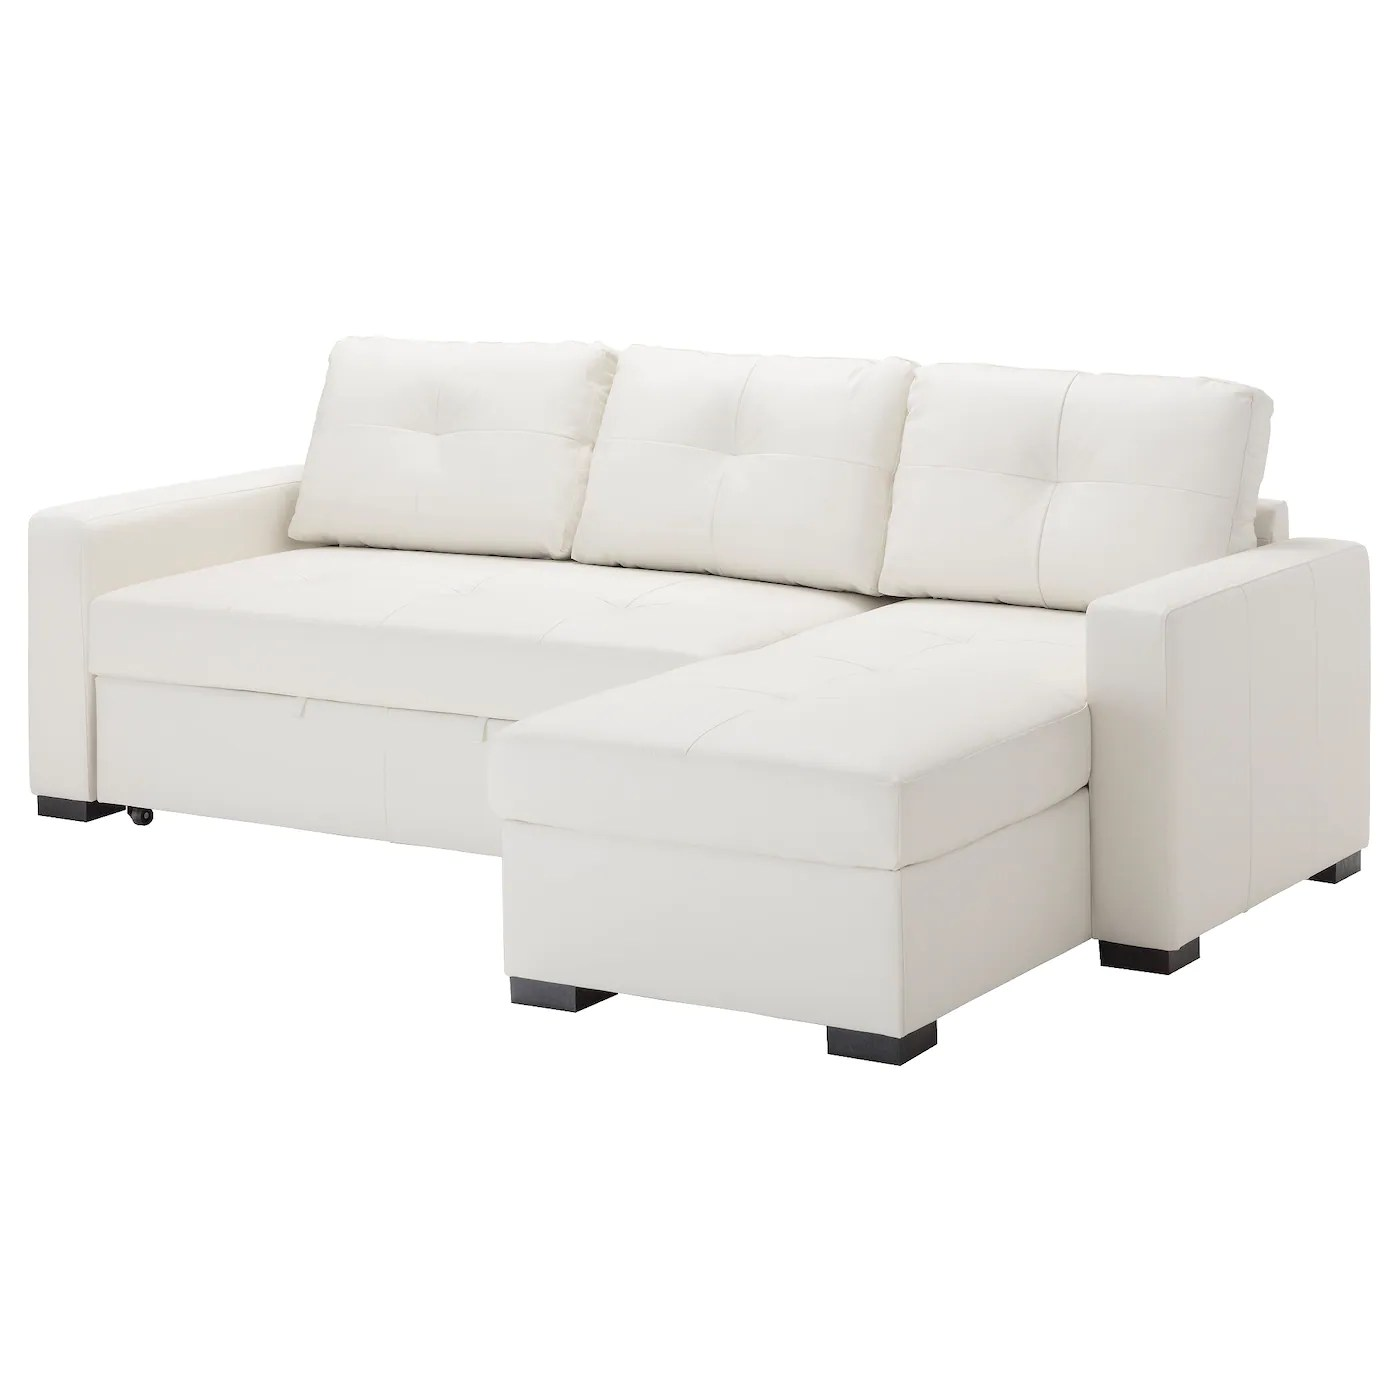 Sofa Ikea Ragunda Corner Sofa Bed With Storage Kimstad Off White